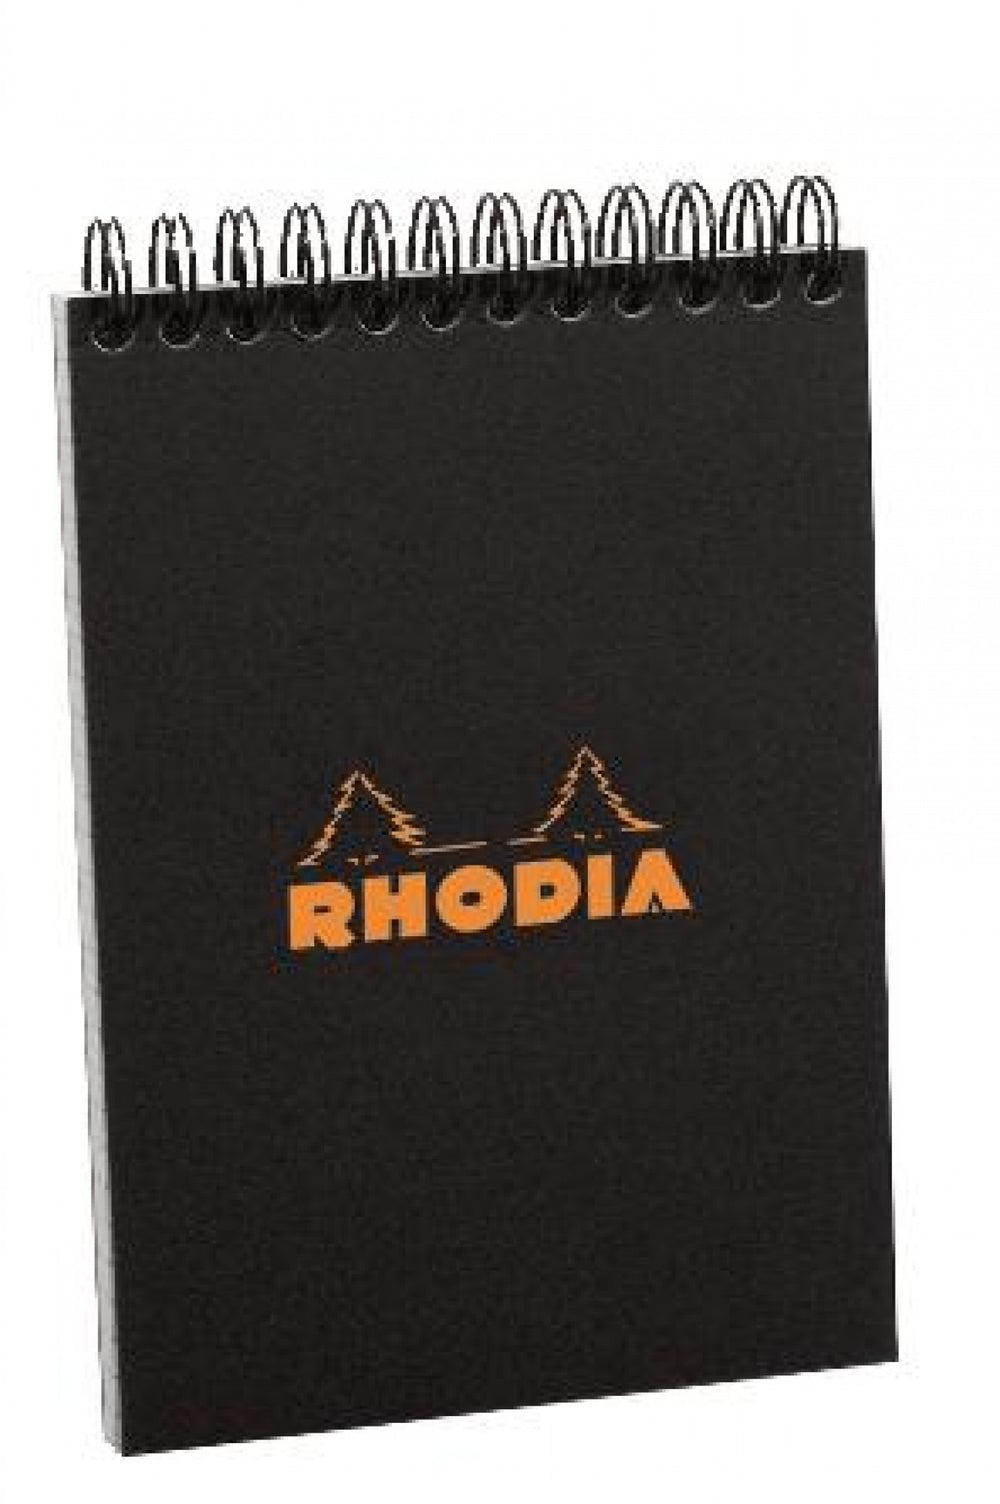 Rhodia #13 Black Top Wirebound Notepad